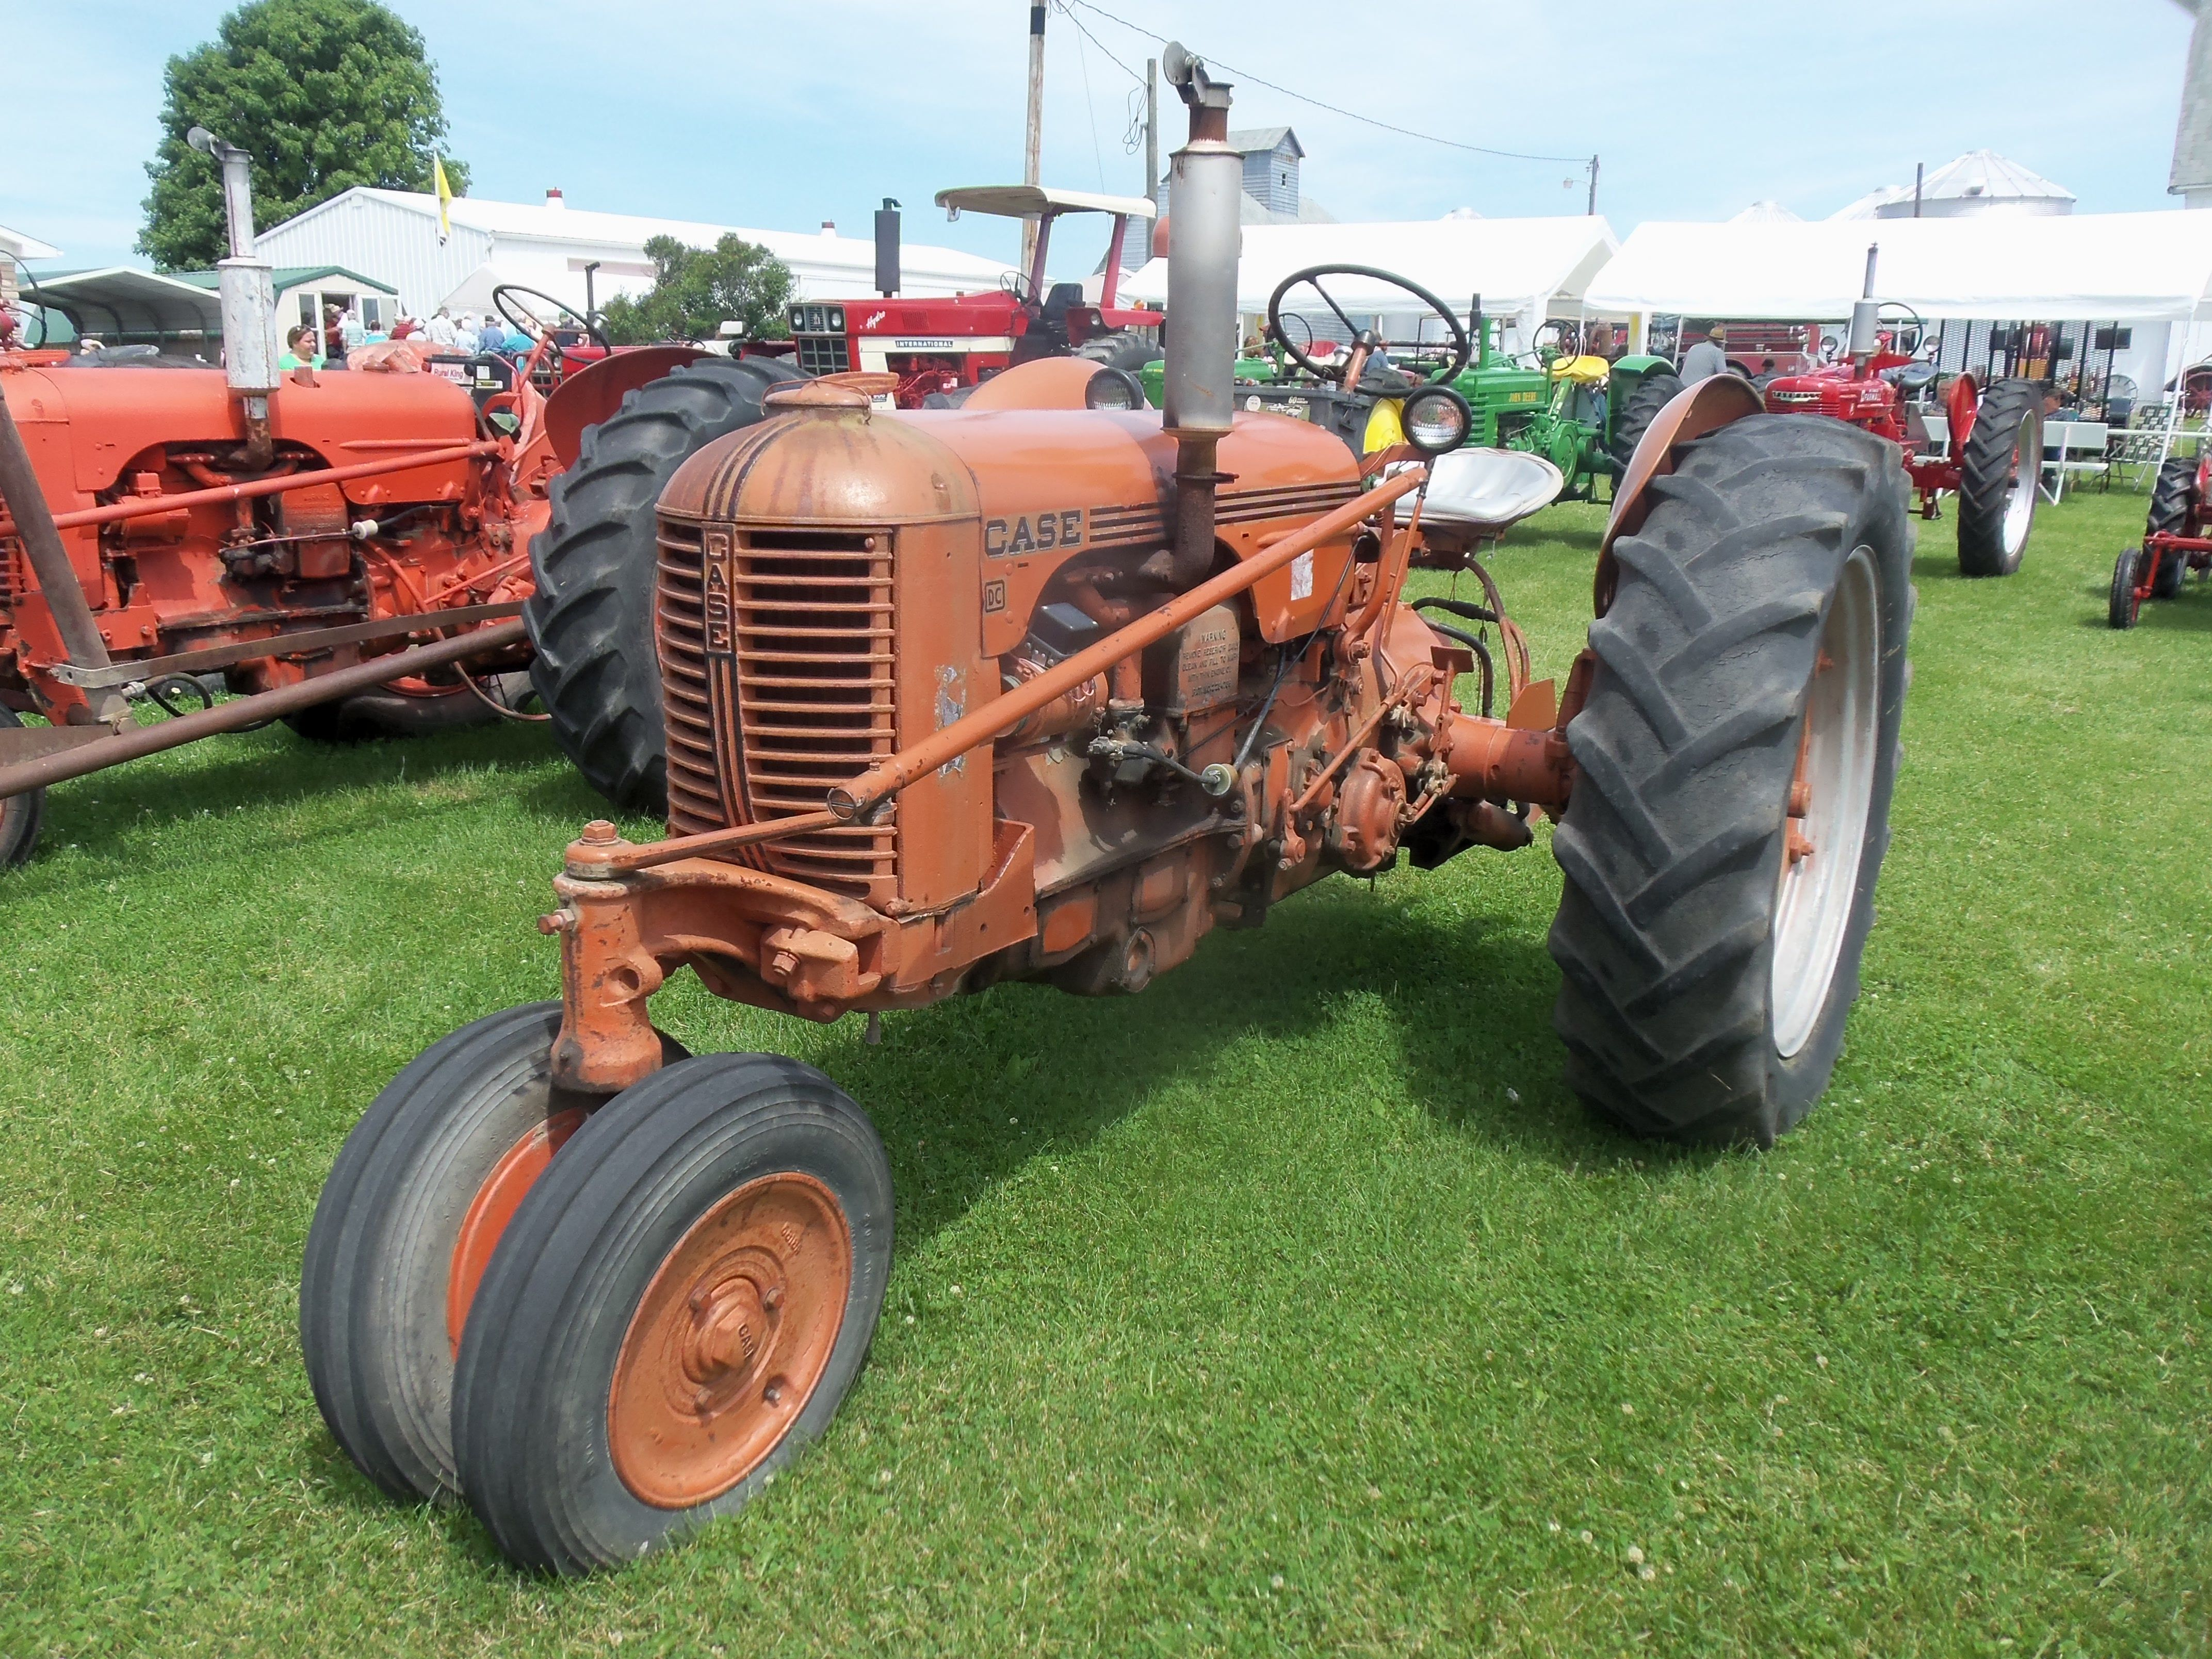 Old Case Tractor : Case dc tractor j i equipment pinterest